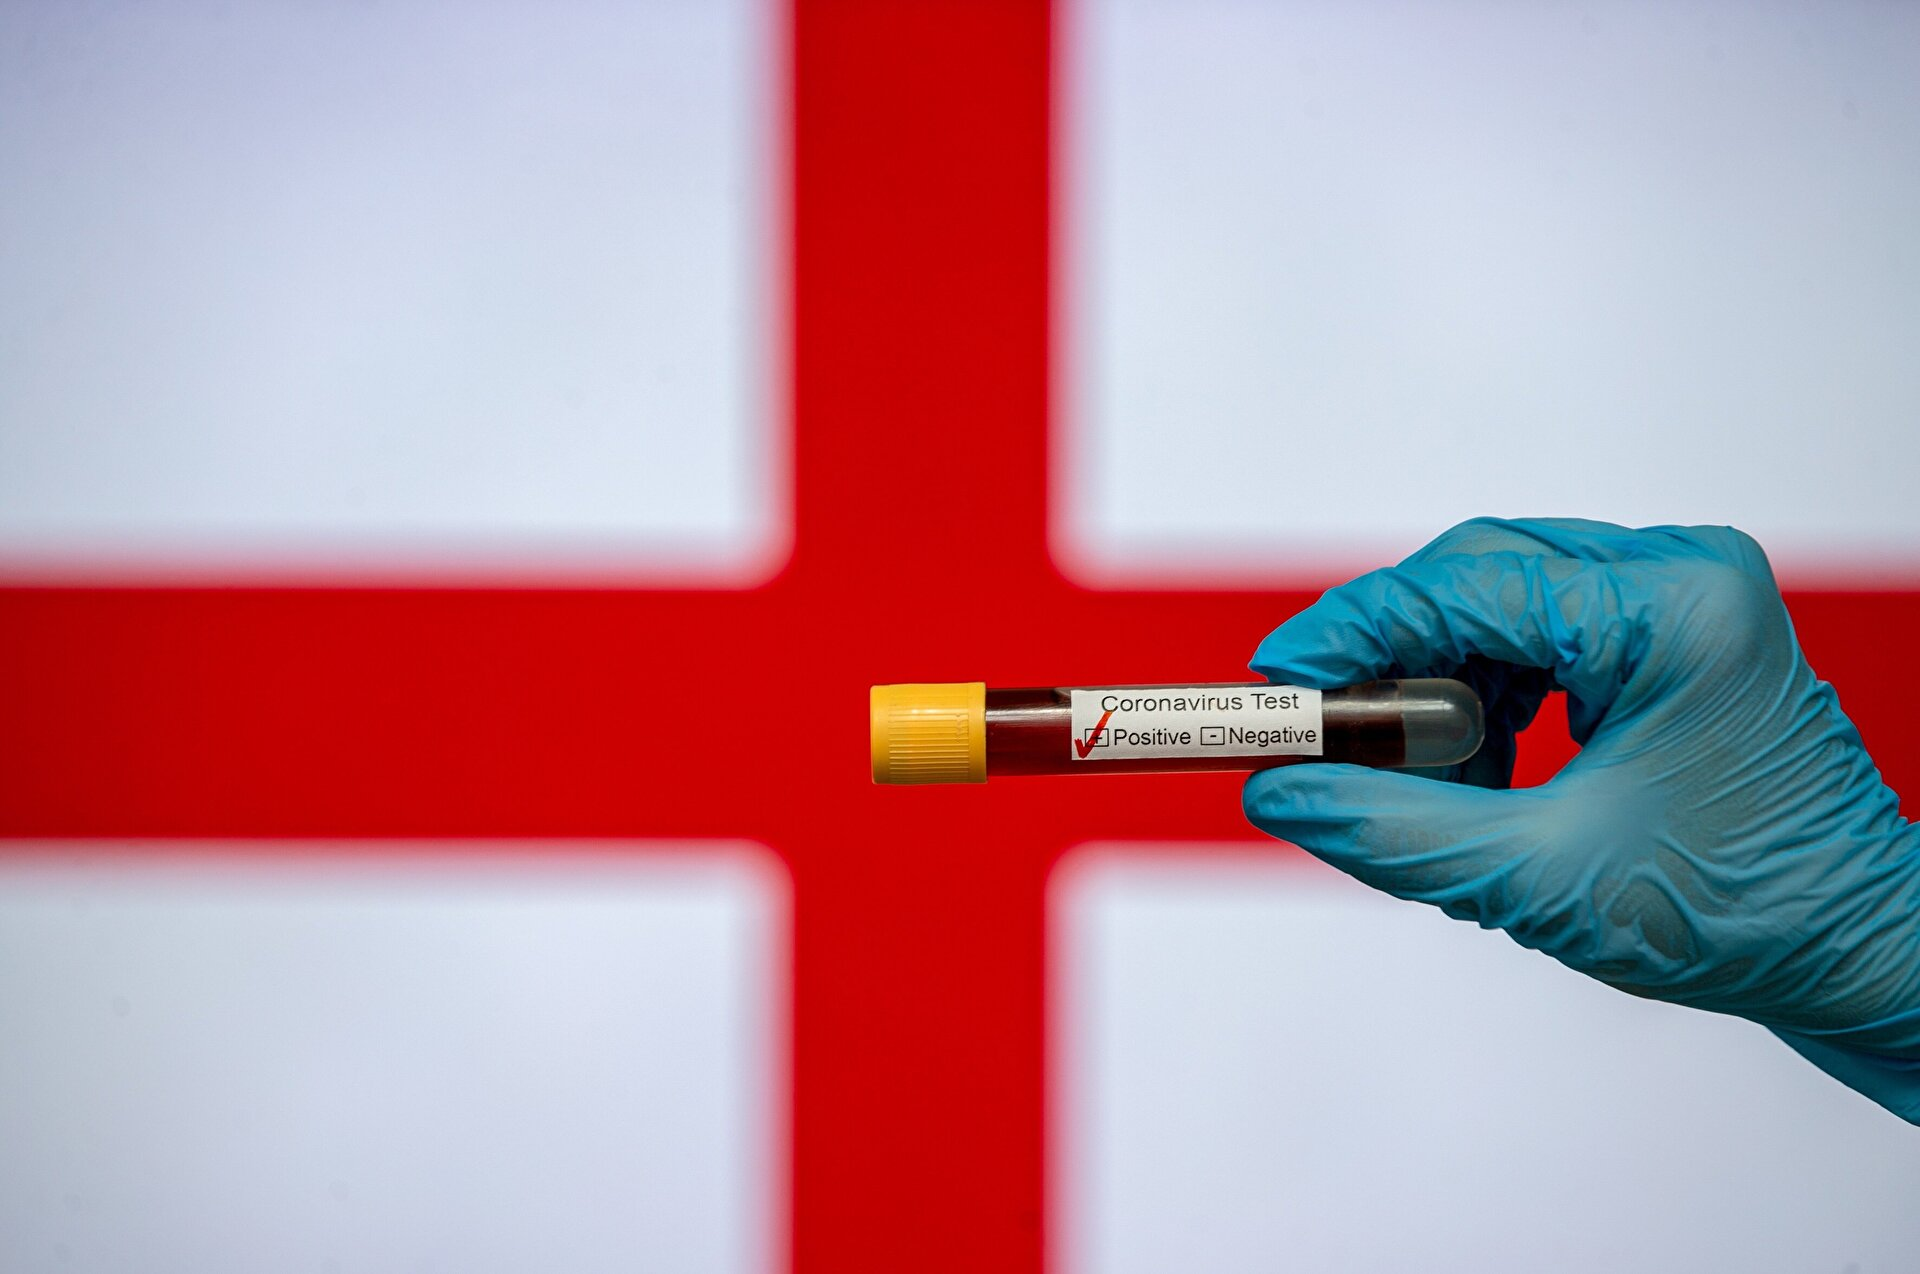 Blood is thicker than water: Nations take on coronavirus